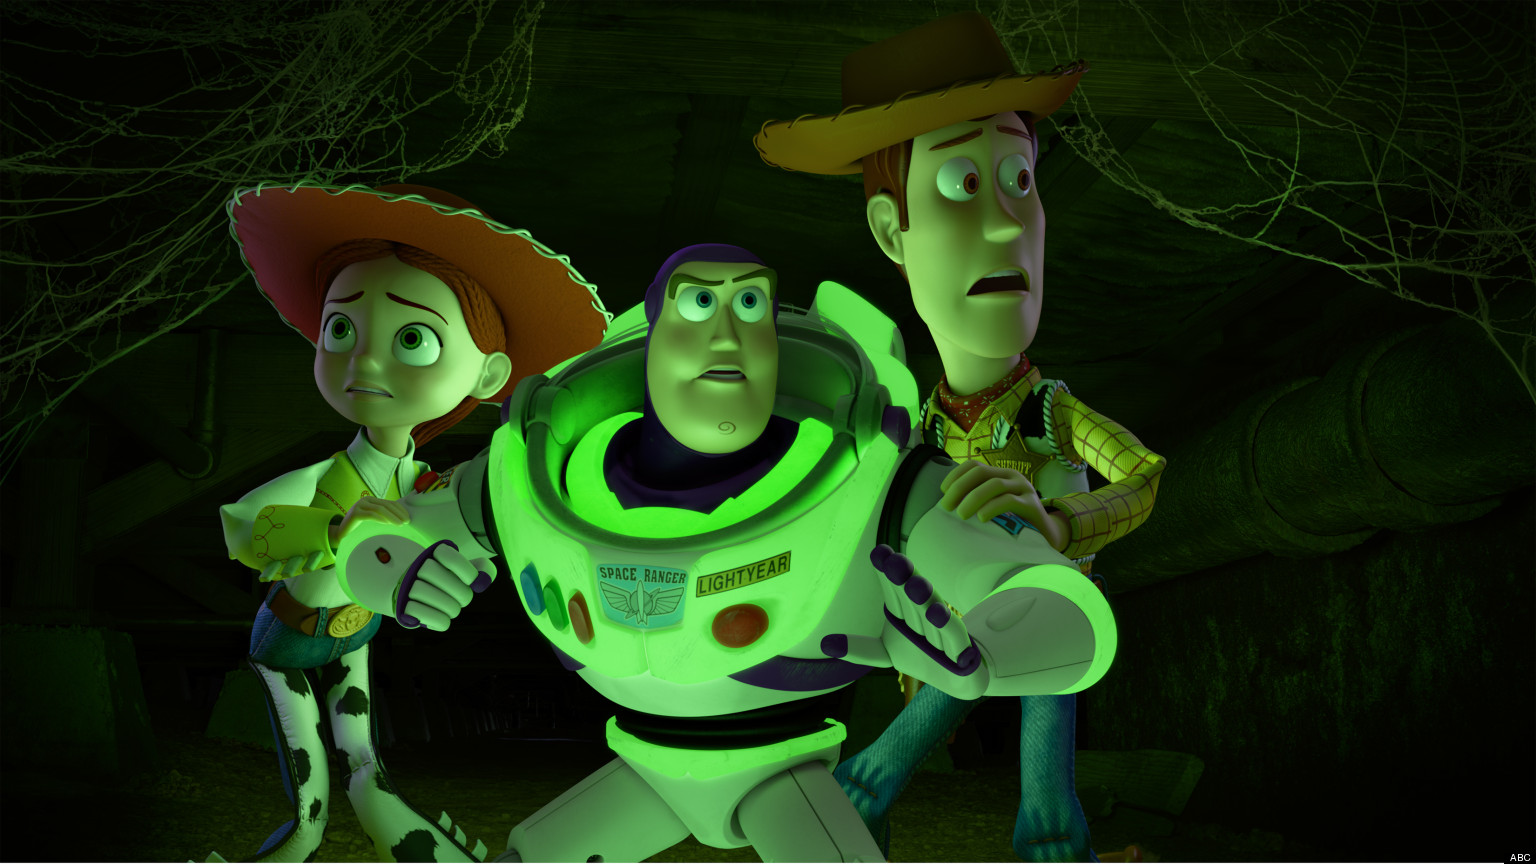 Extended Trailer for Toy Story of Terror